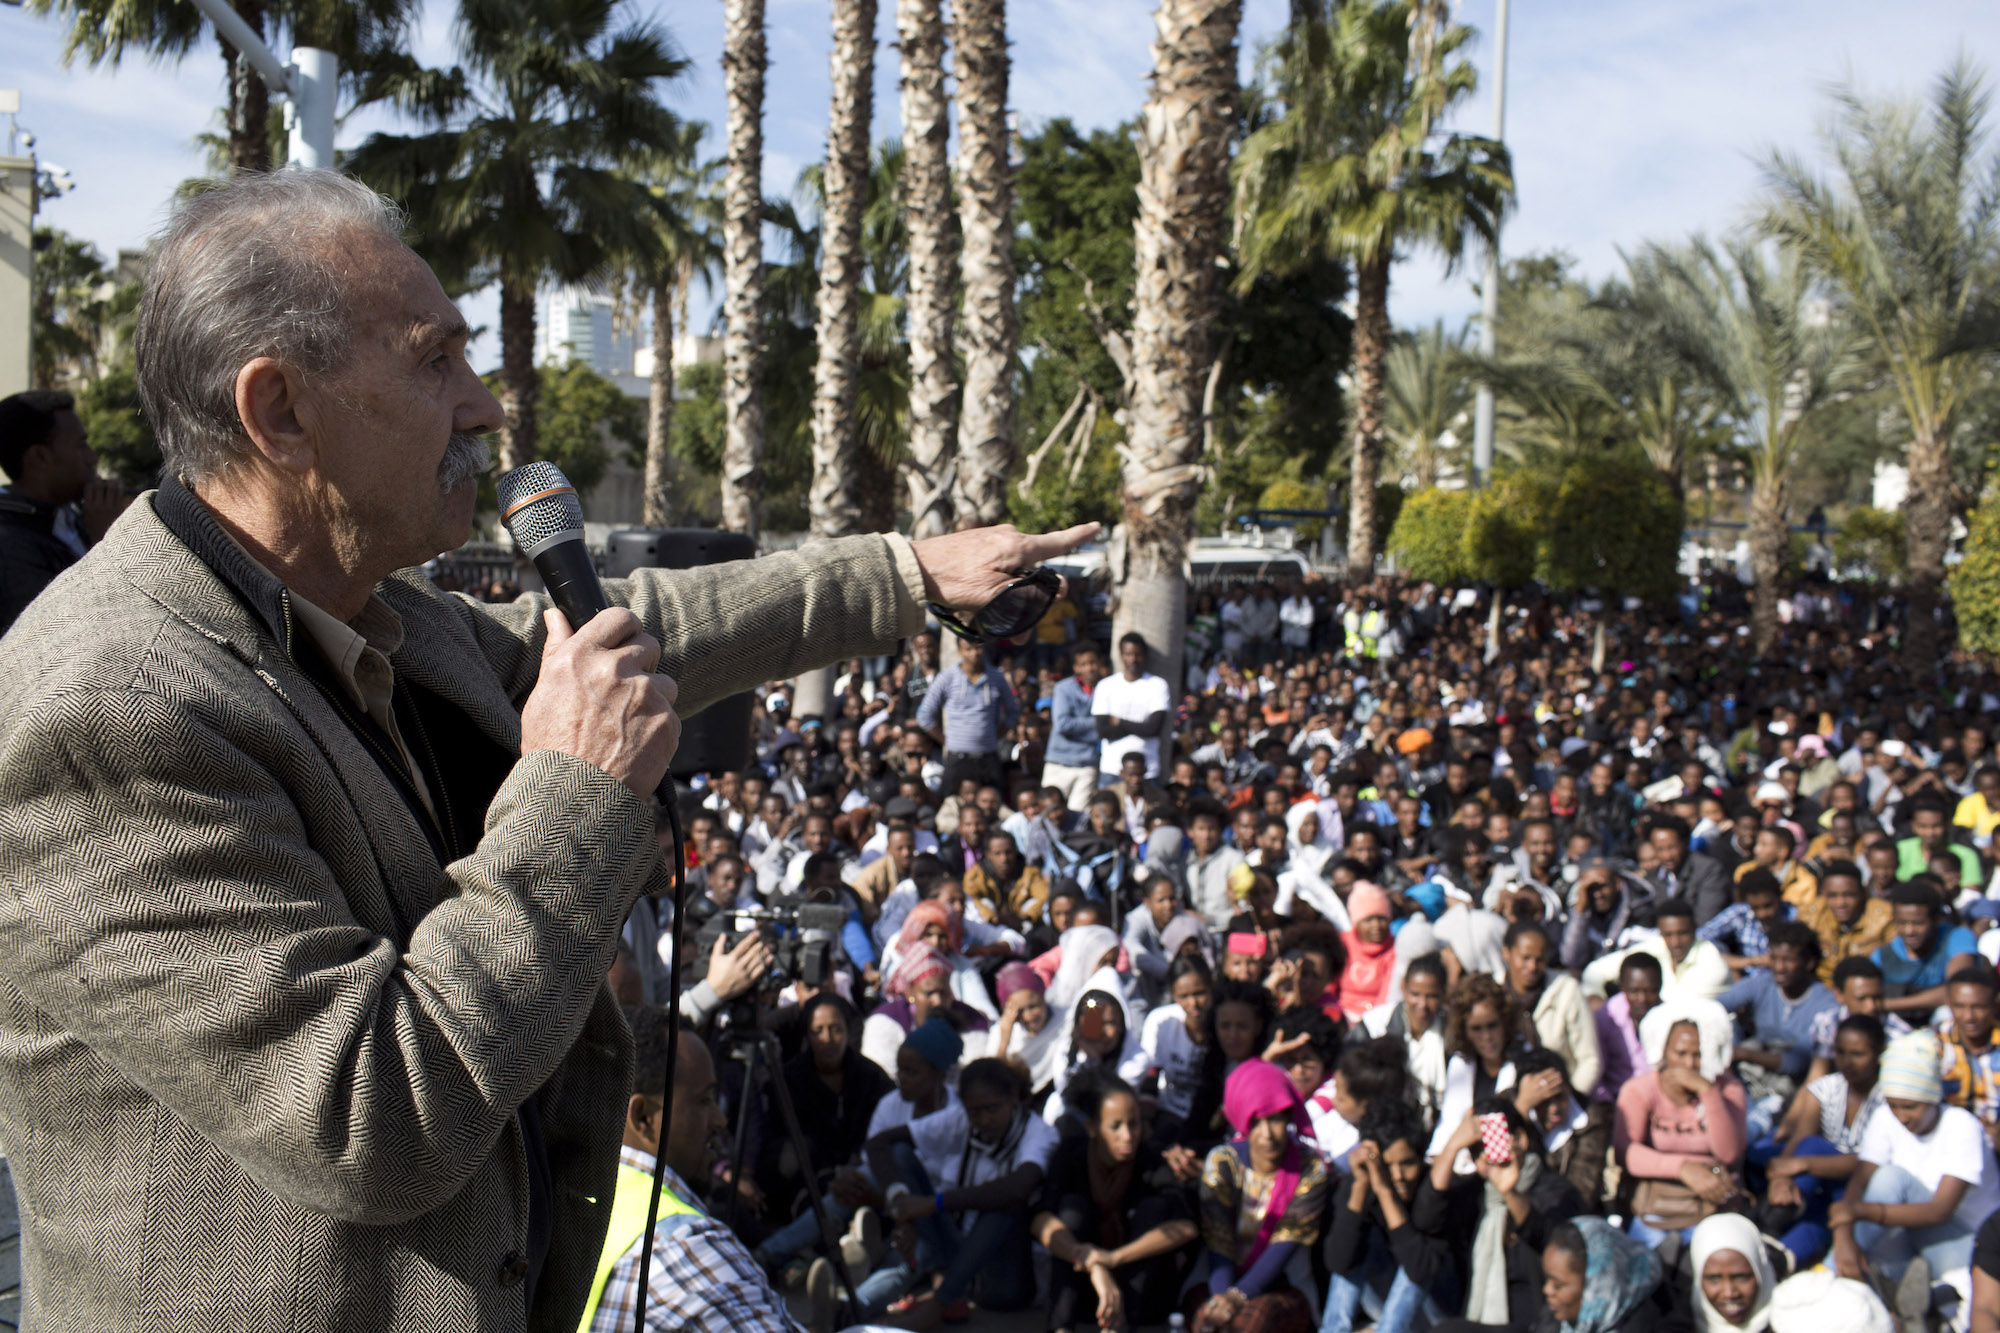 Reuven Abergel delivers a speech to more than 10,000 African asylum seekers in south Tel Aviv's Levinsky Park in support of their struggle, January 7, 2014. (Activestills.org)